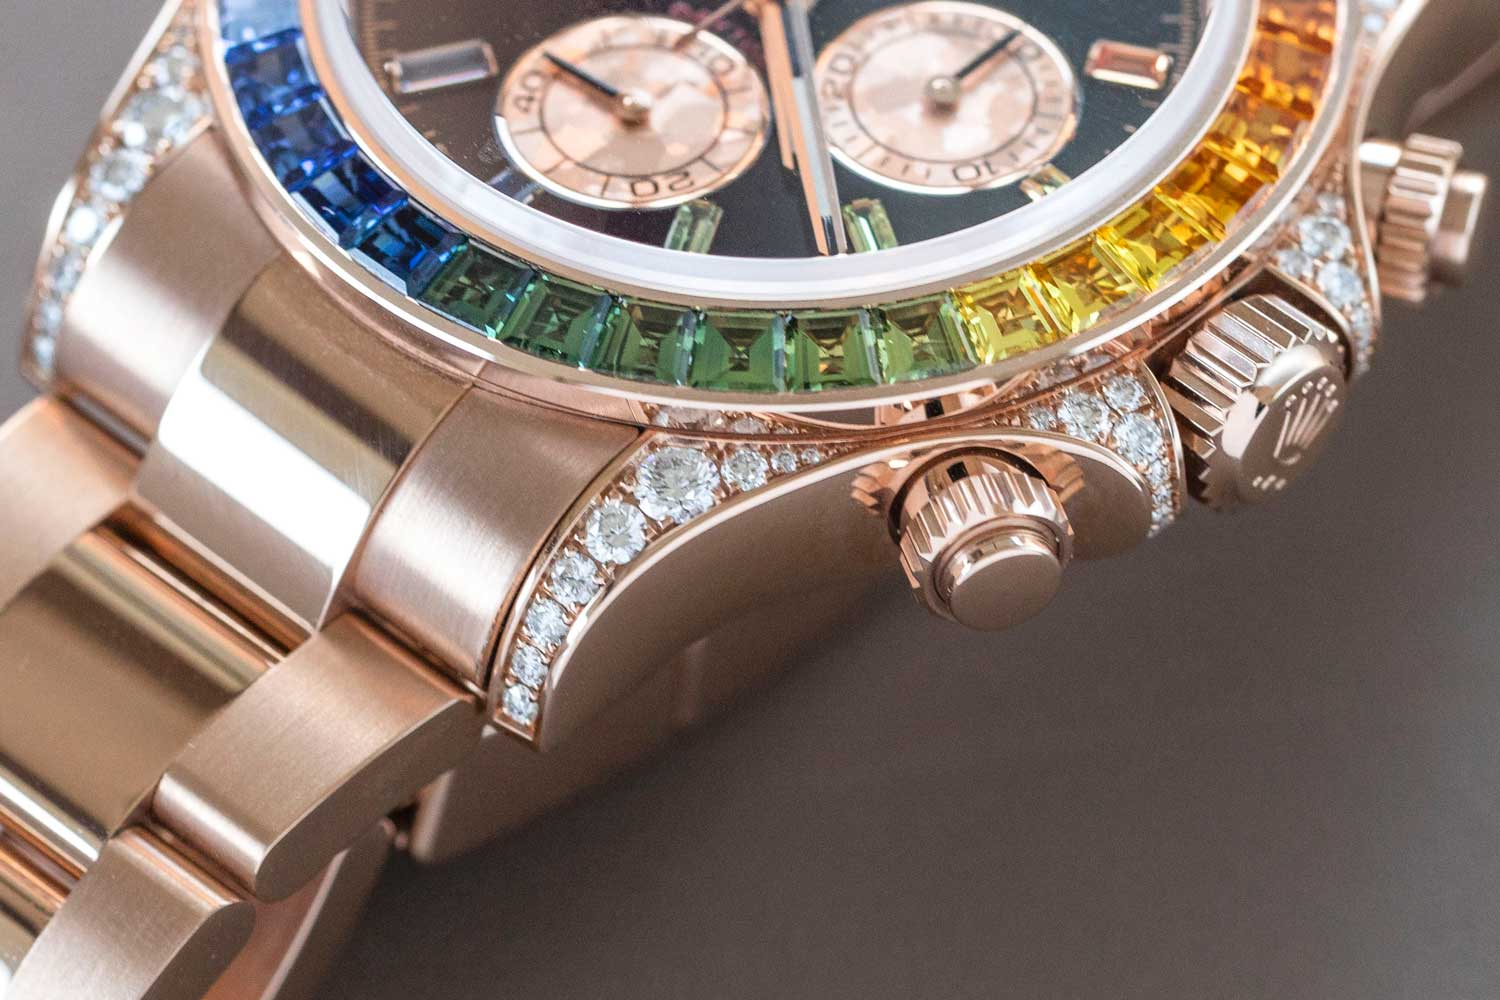 The Rolex Daytona ref. 116595 RBOW with the black dial and Everose case (©Revolution)